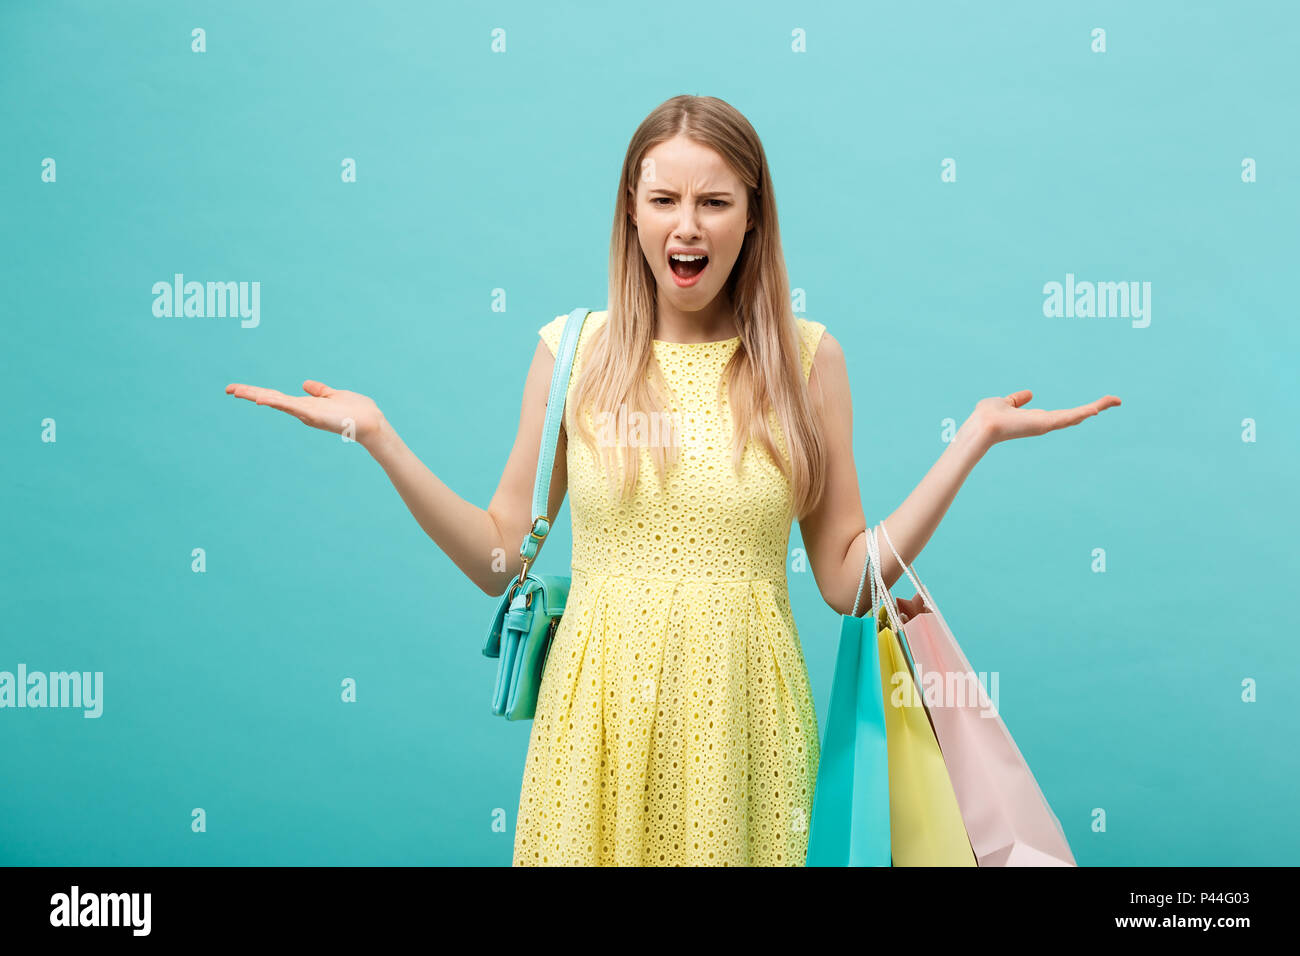 Shoping and Sale Concept: beautiful unhappy young woman in yellow elegant dress with shopping bag. - Stock Image